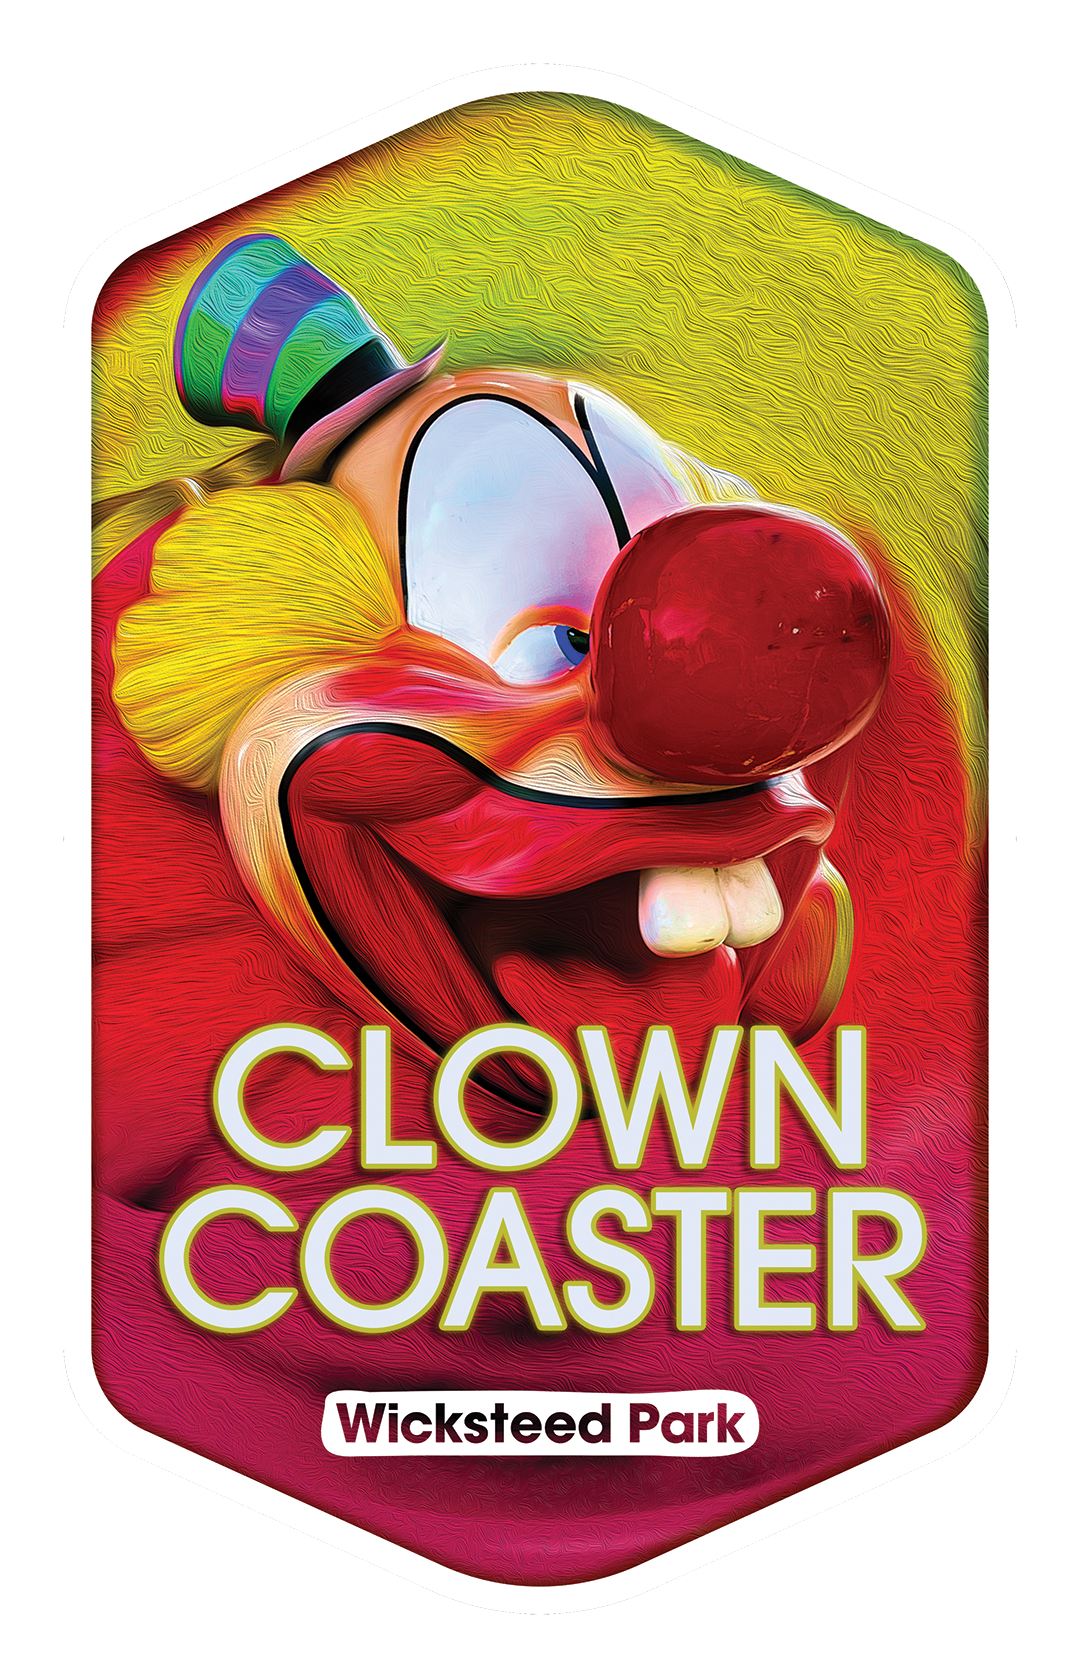 Clown Coaster - Wicksteed Park - Rides and Attractions